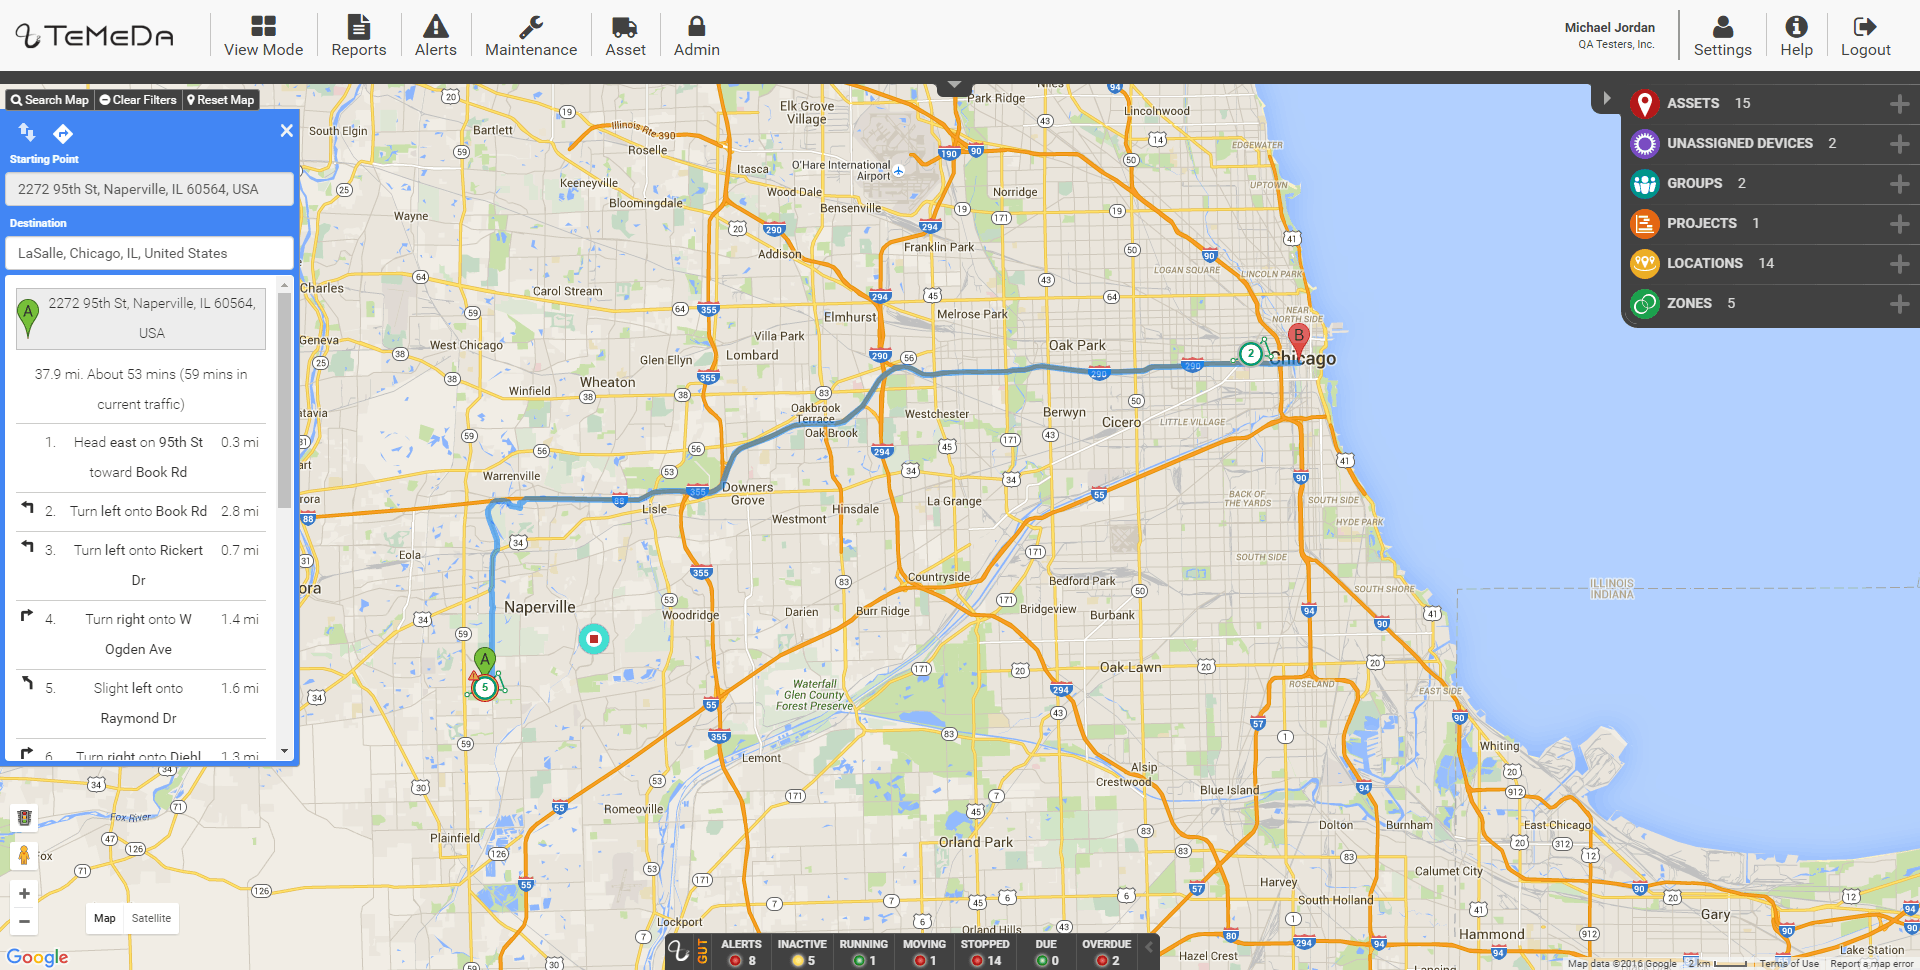 The Directions feature adds driver directions into the Temeda app.